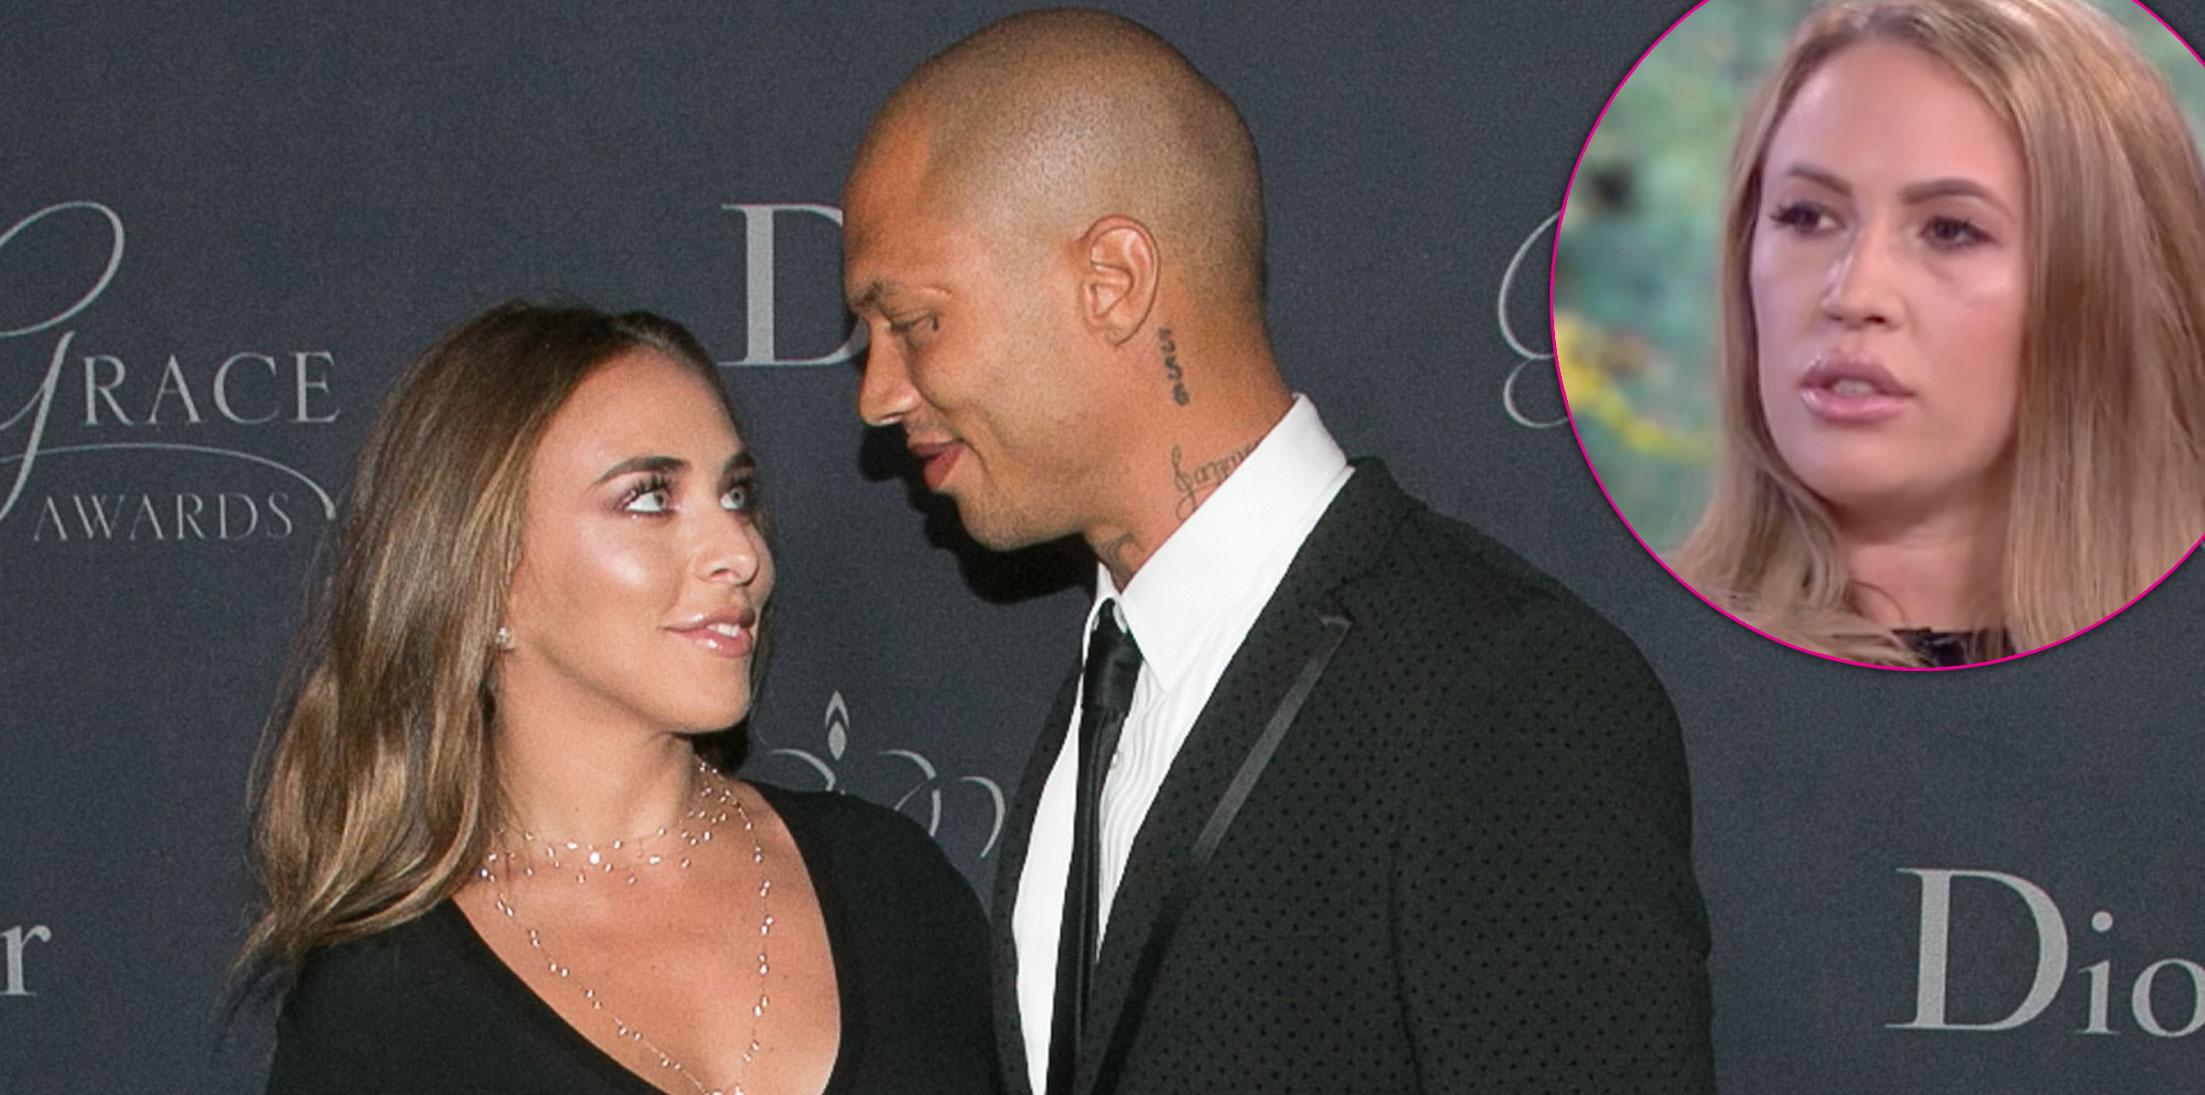 Jeremy Meeks Wife Melissa Miscarriage Affair Long